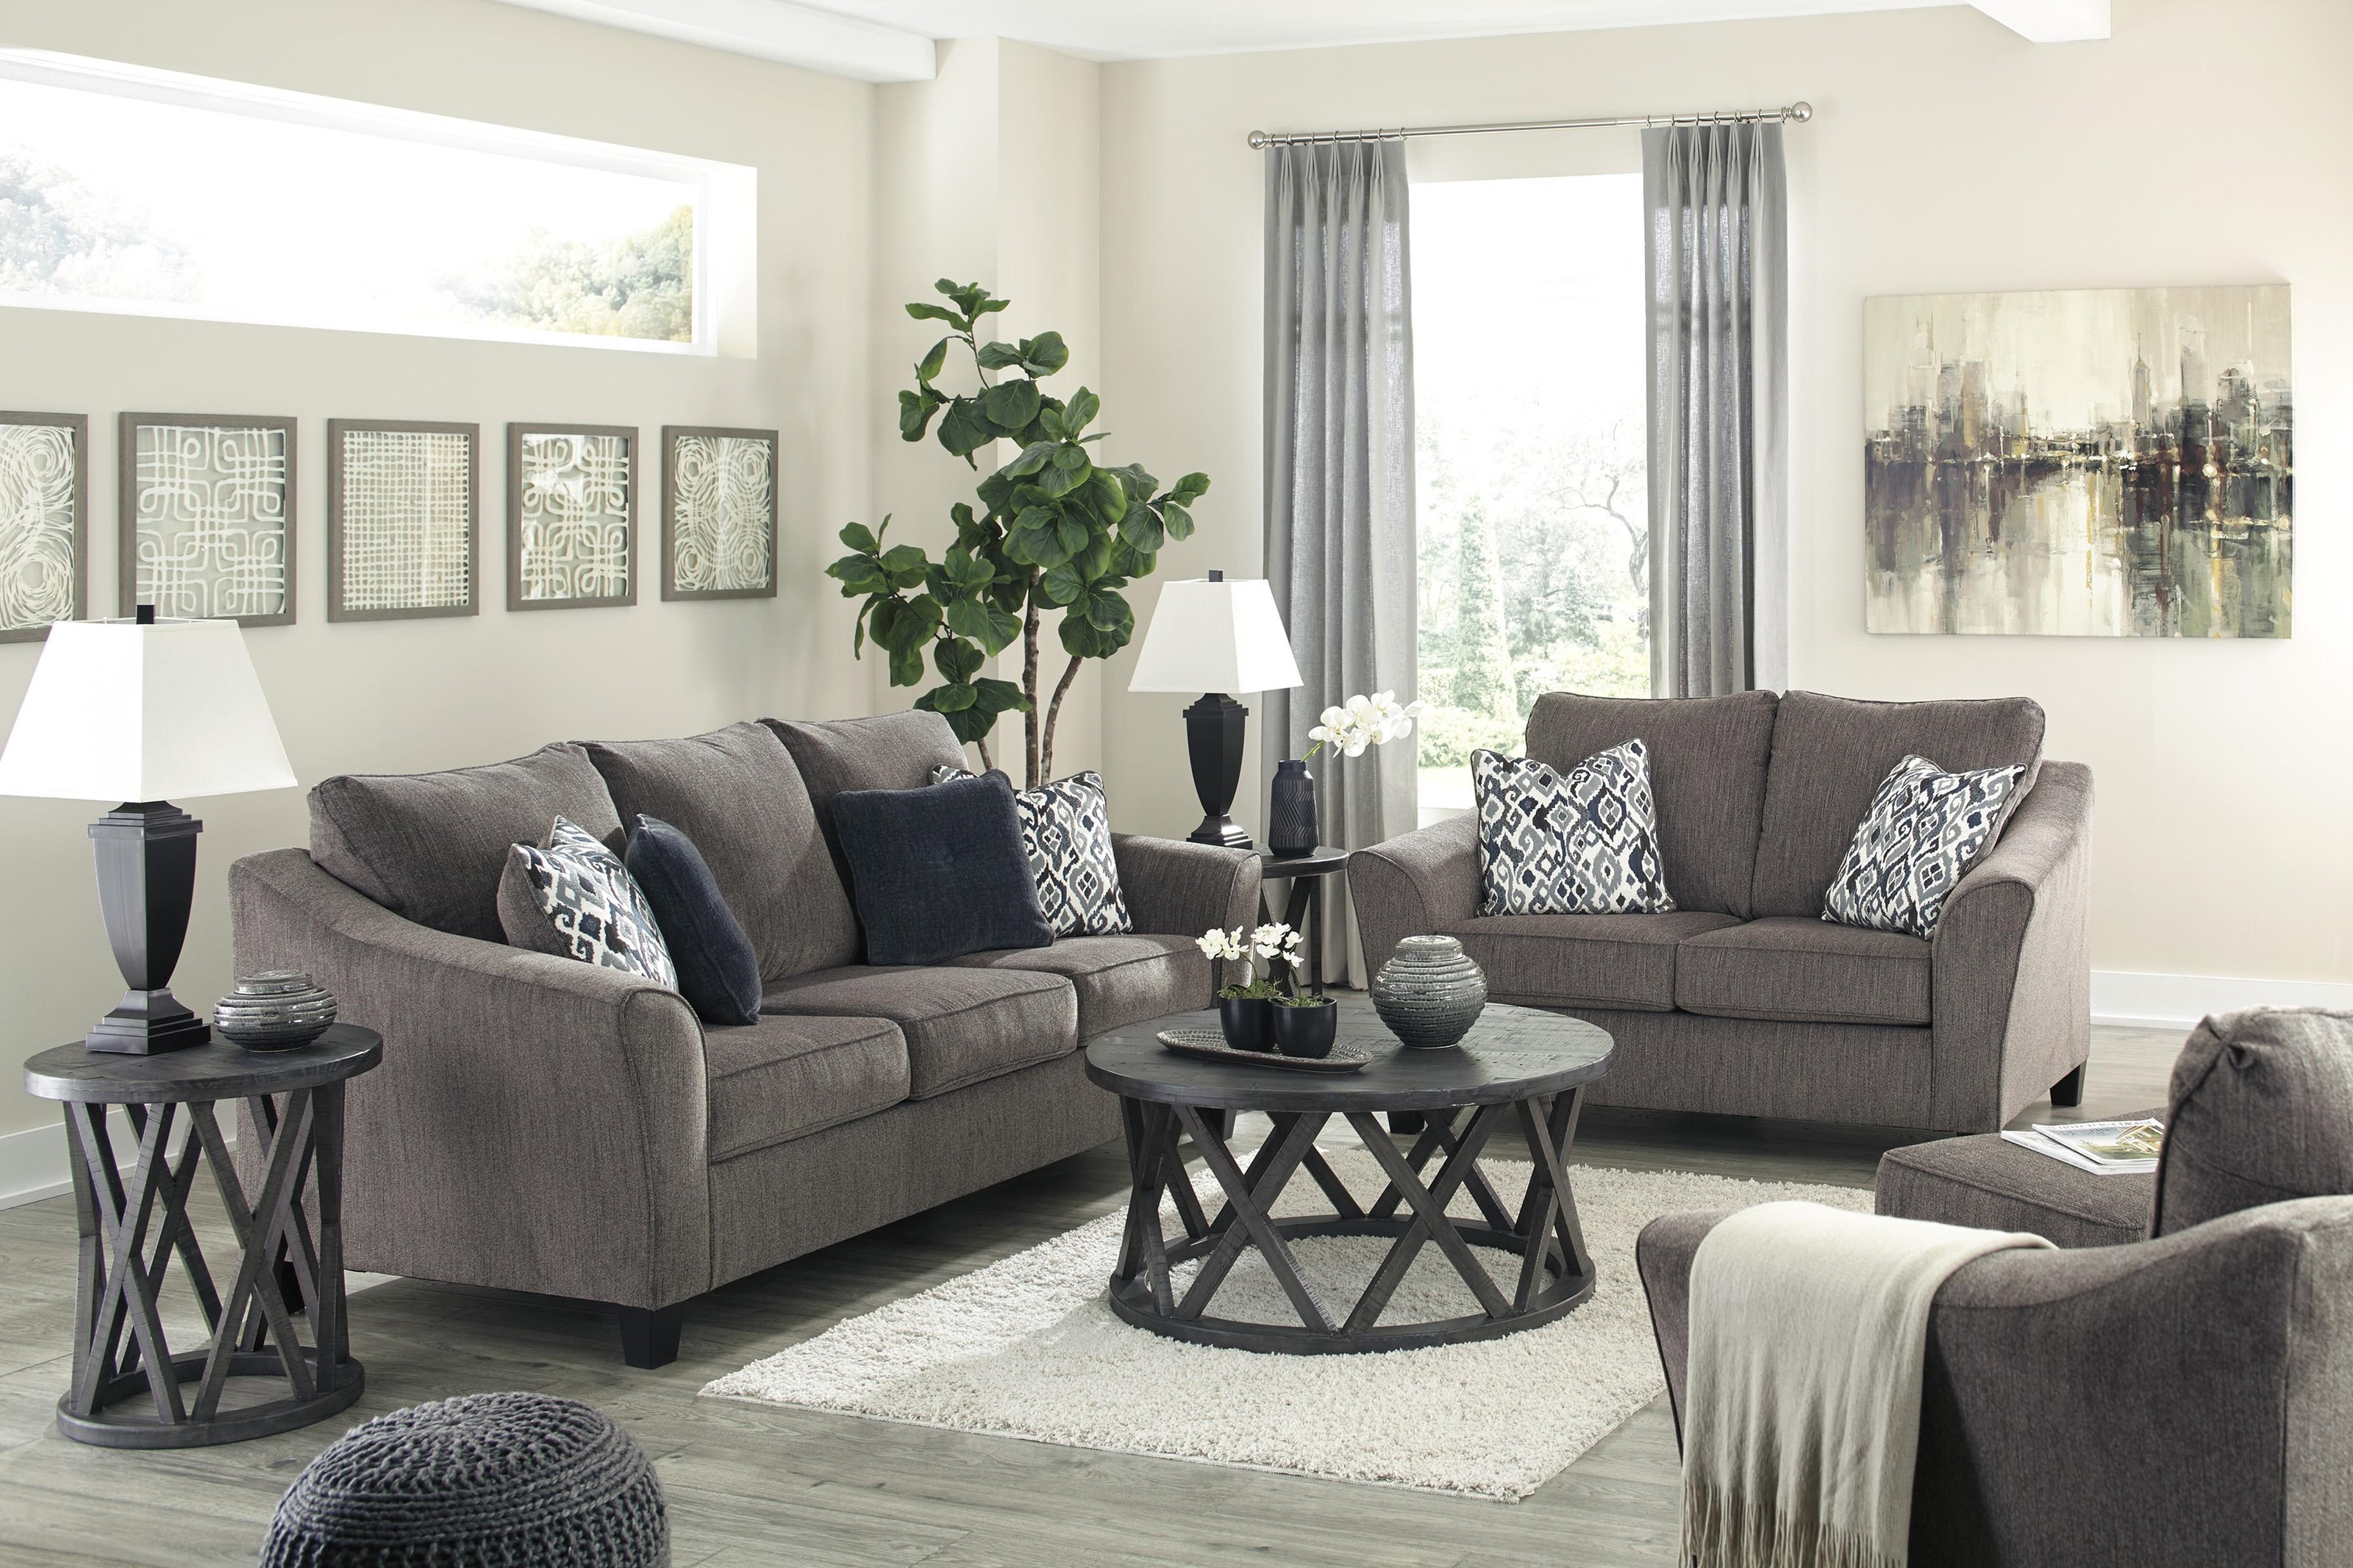 Picture of: Signature Design By Ashley Nemoli 4580638 35 23 Slate Sofa Loveseat And Chair Set Sam Levitz Furniture Stationary Living Room Groups